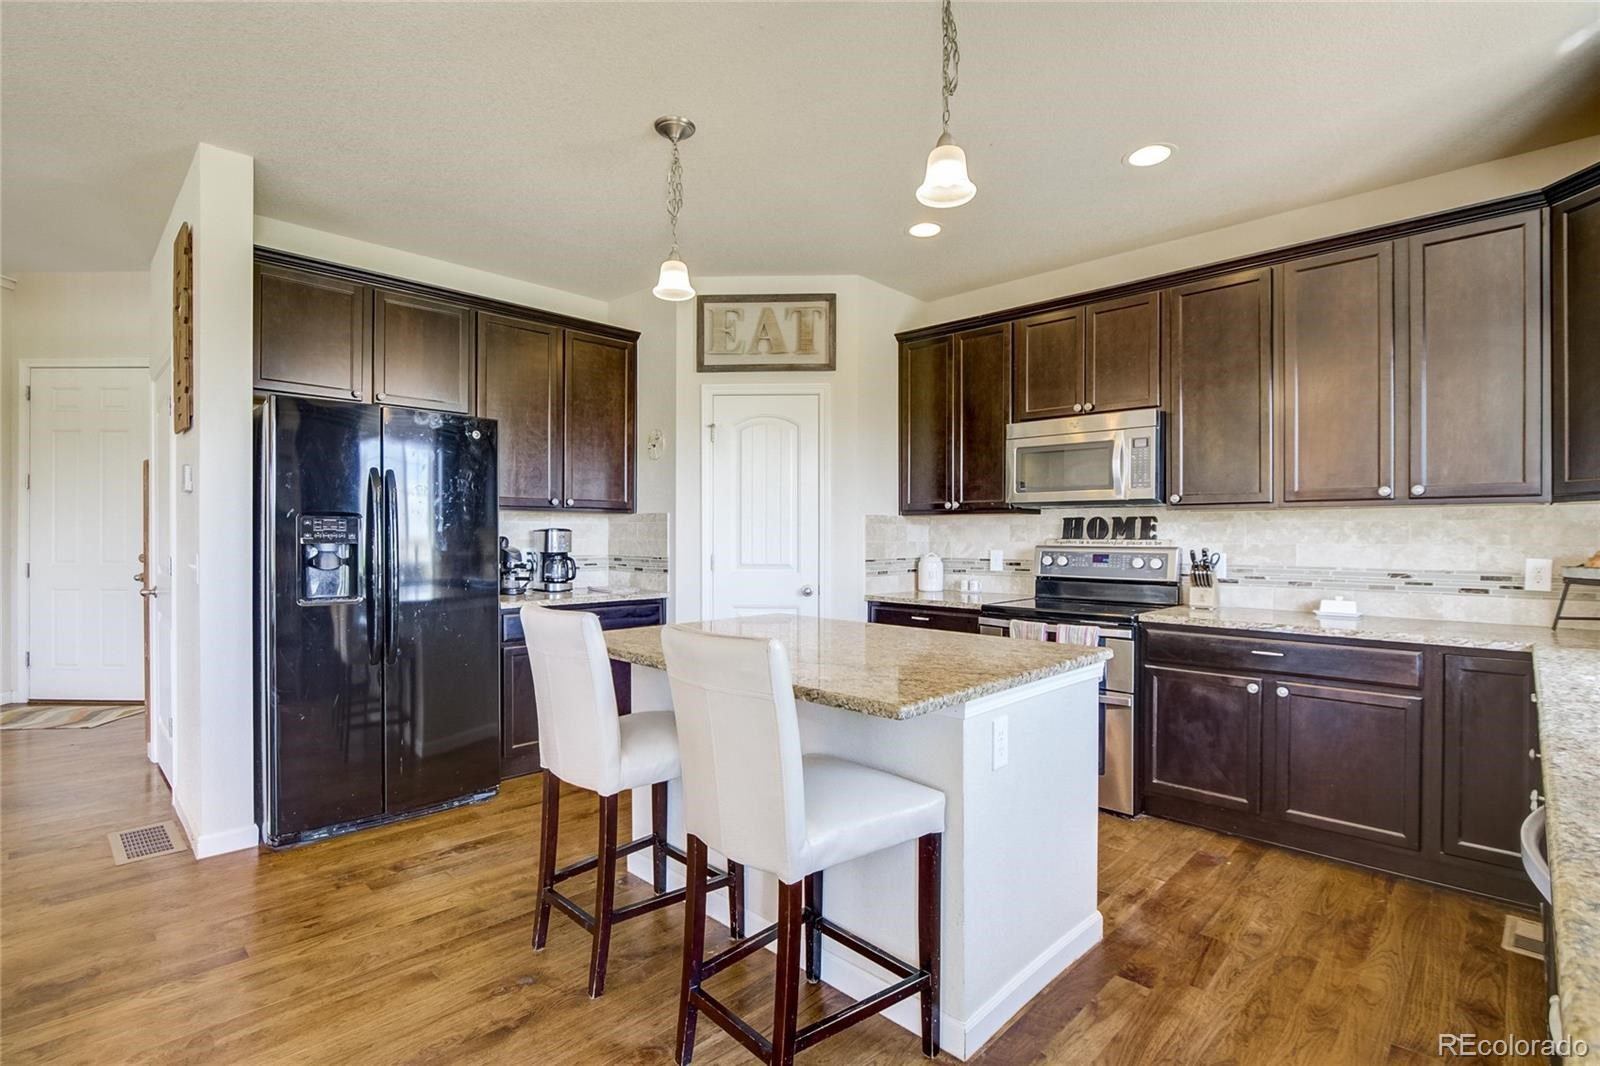 MLS# 8165557 - 10 - 5734 Pineview Court, Windsor, CO 80550